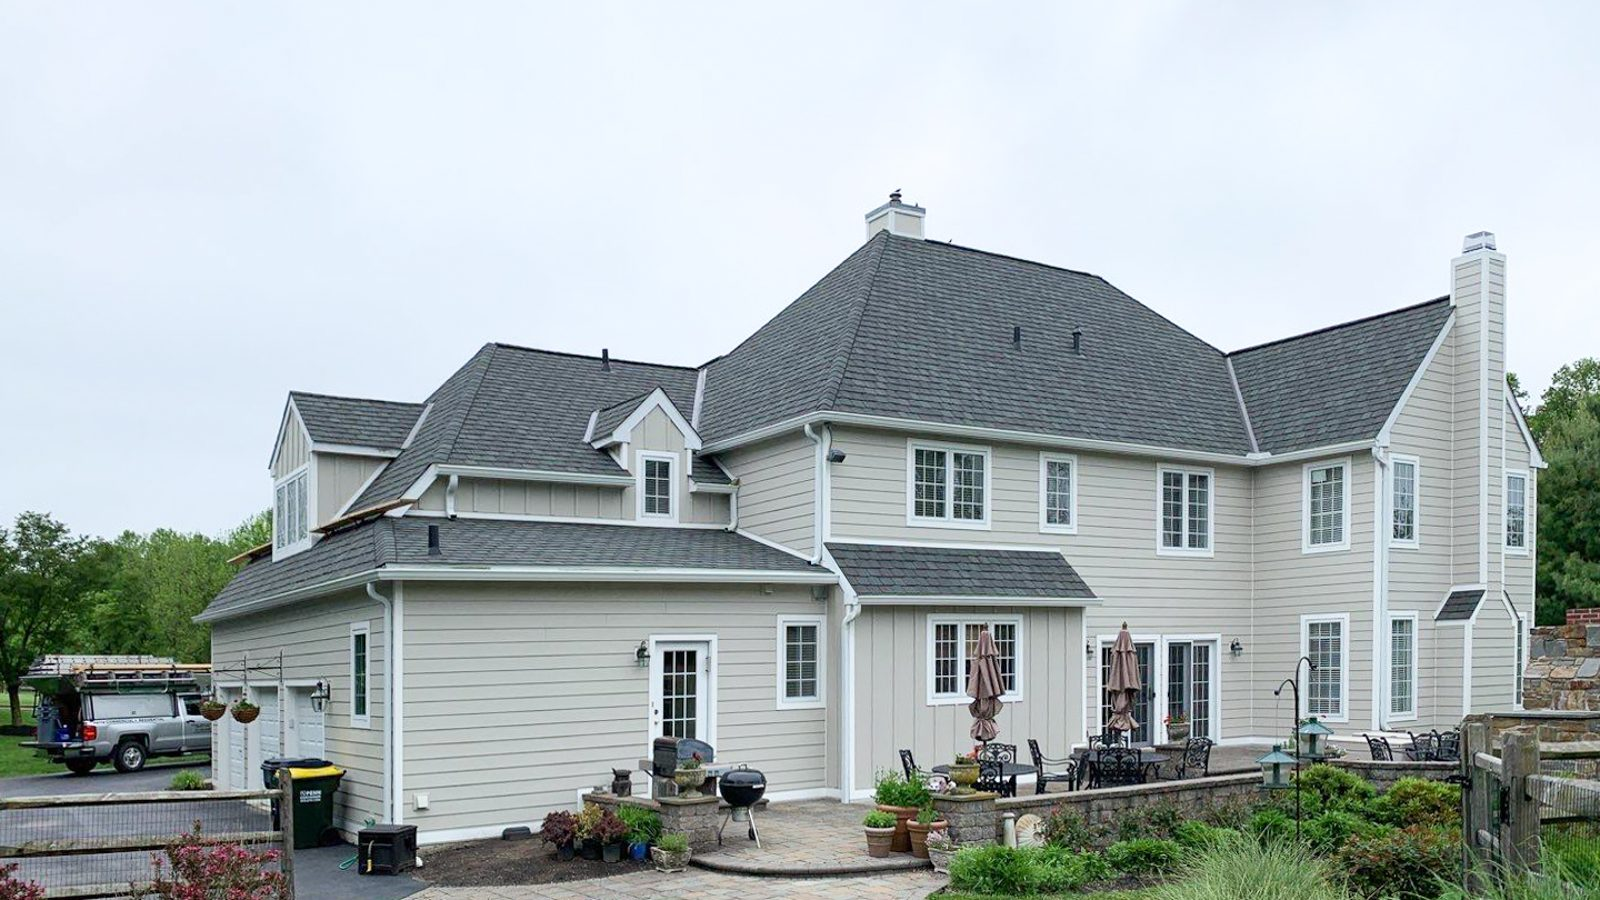 roofing lancaster home remodeling pa pennsylvania windows doors roofing siding gutters